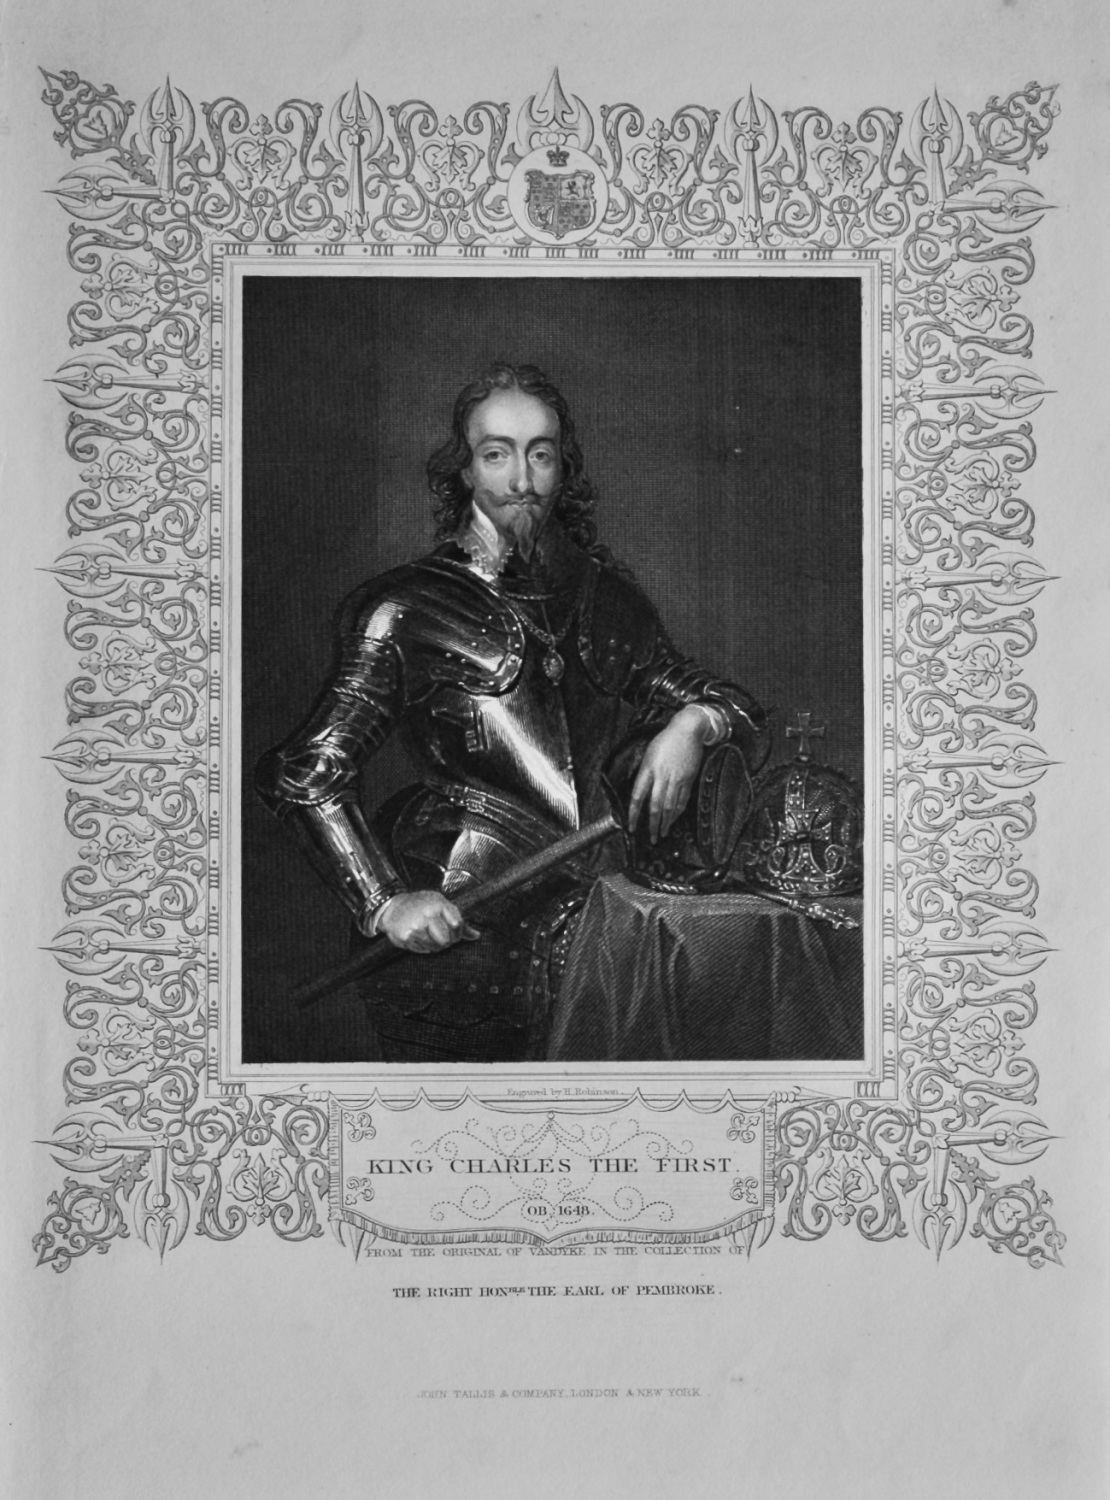 King Charles The First.